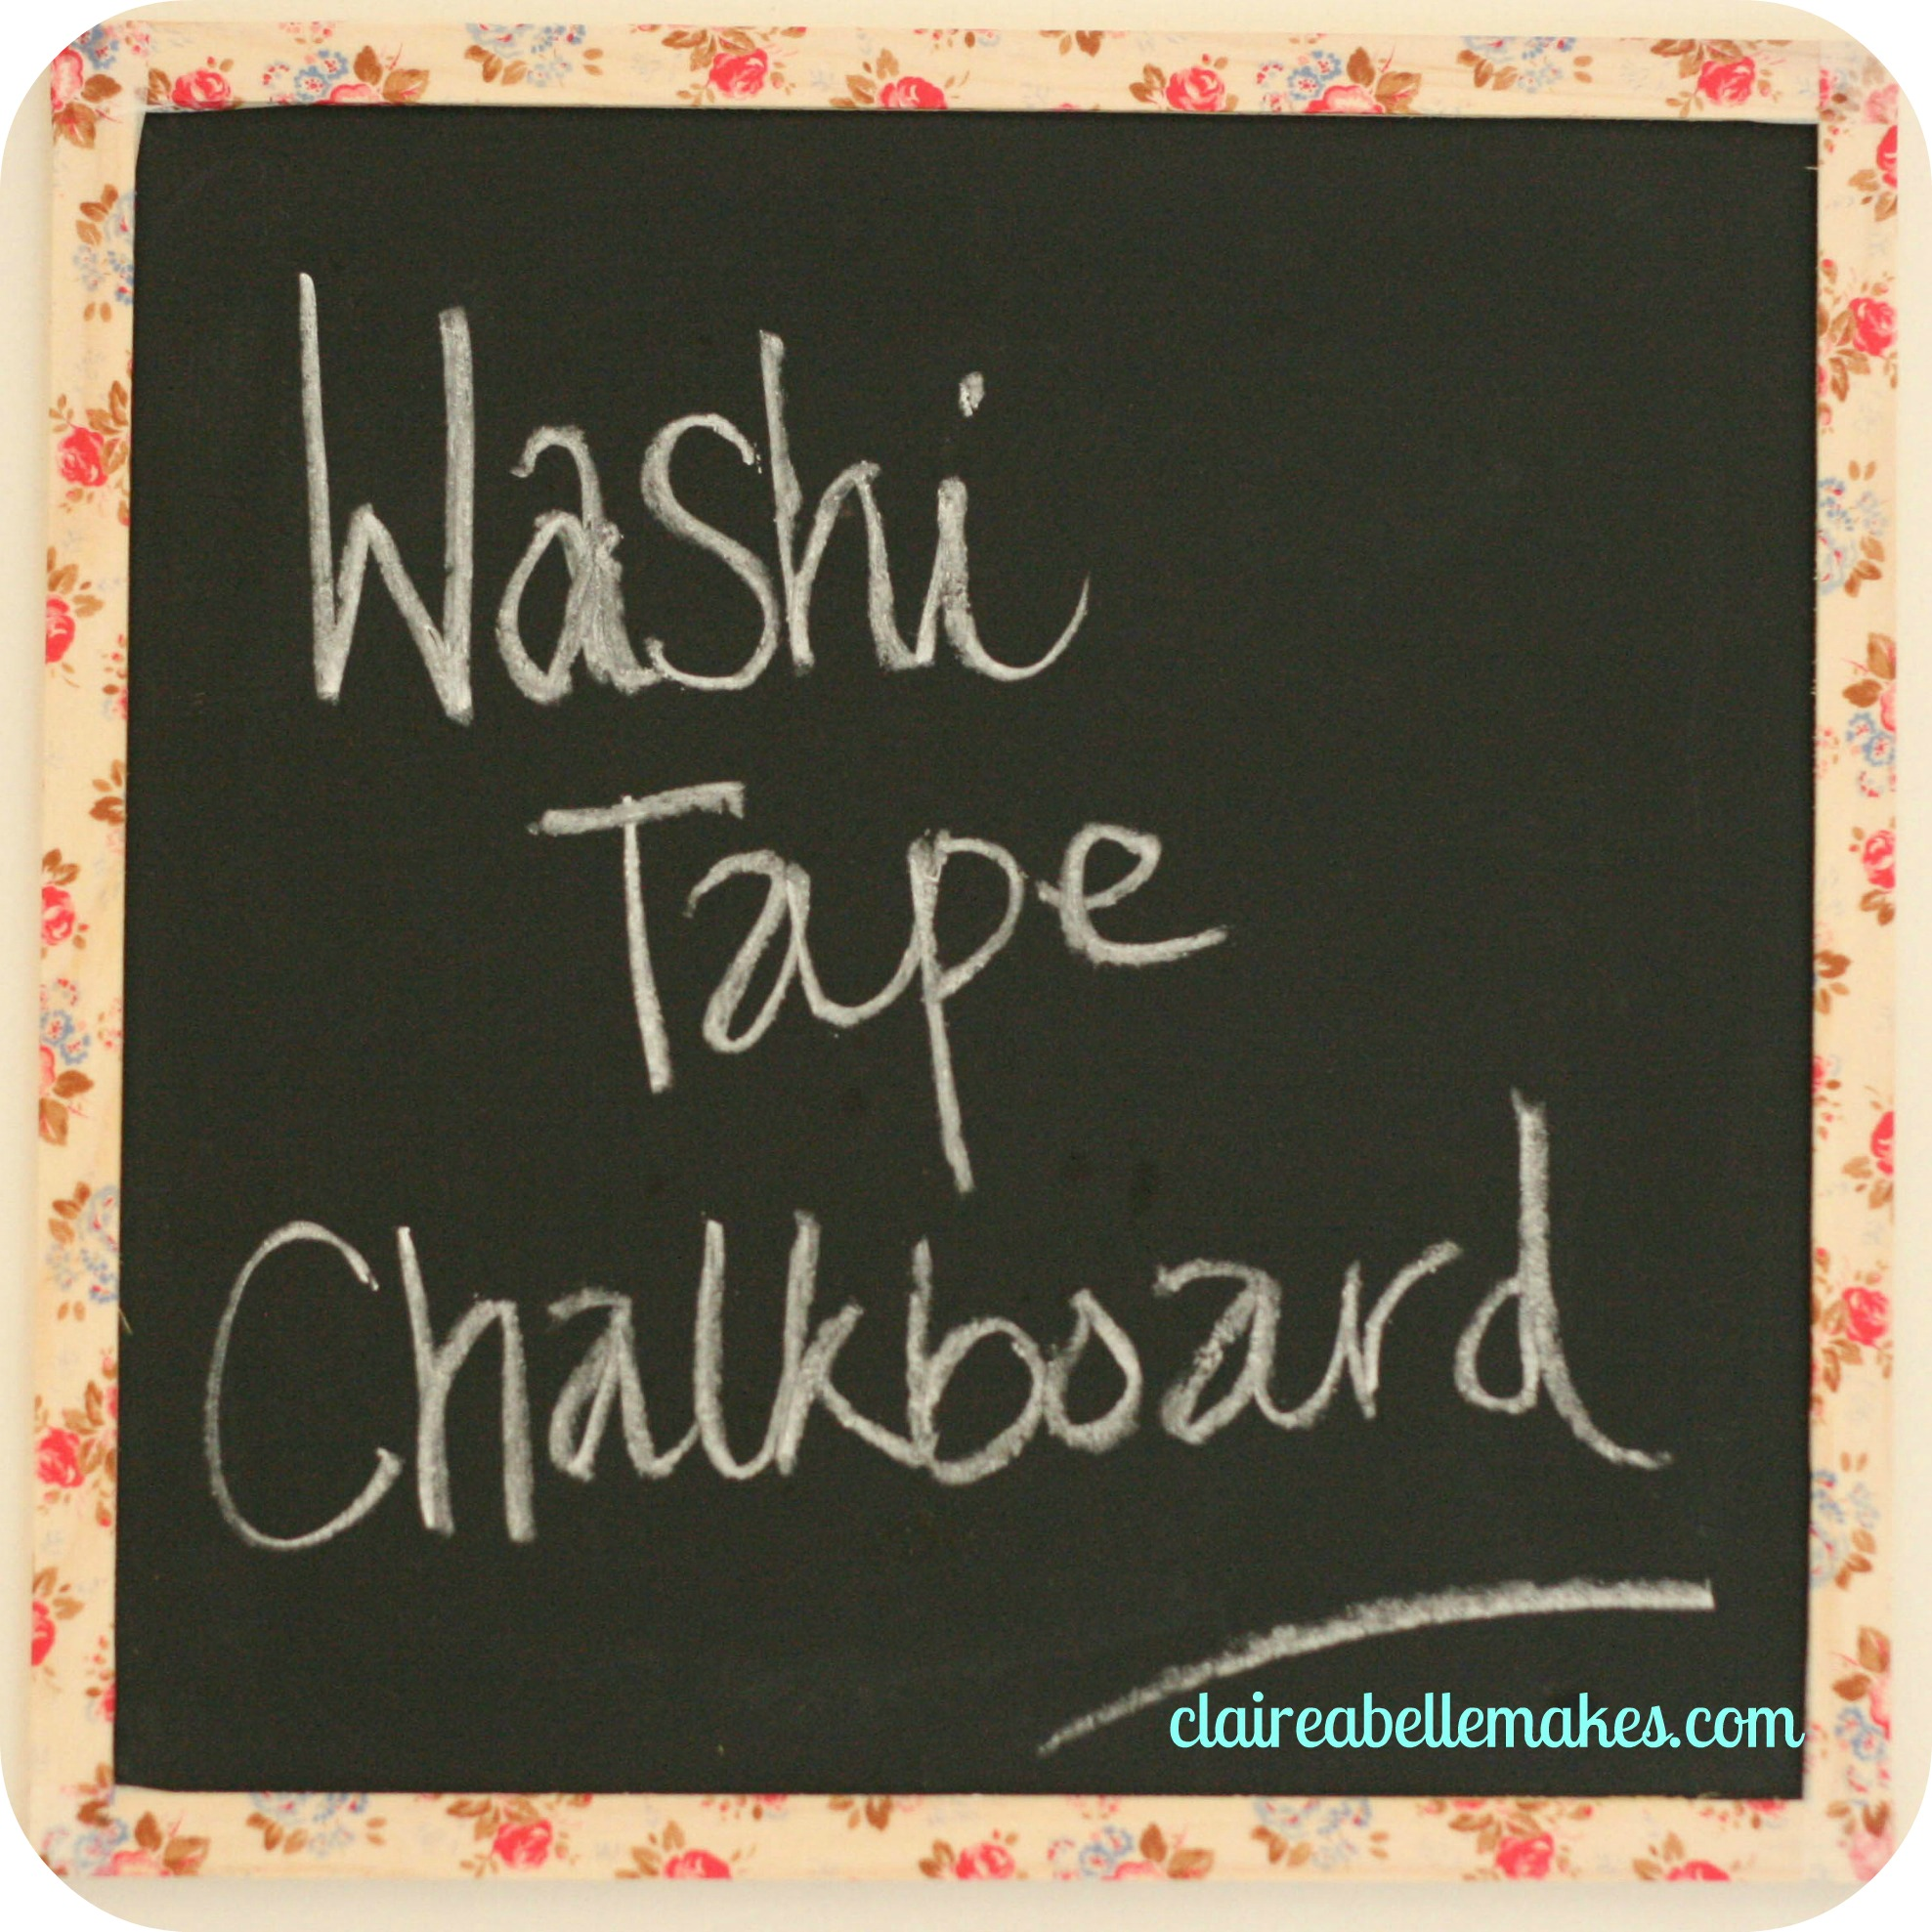 Washi Tape Chalkboard: claireabellemakes